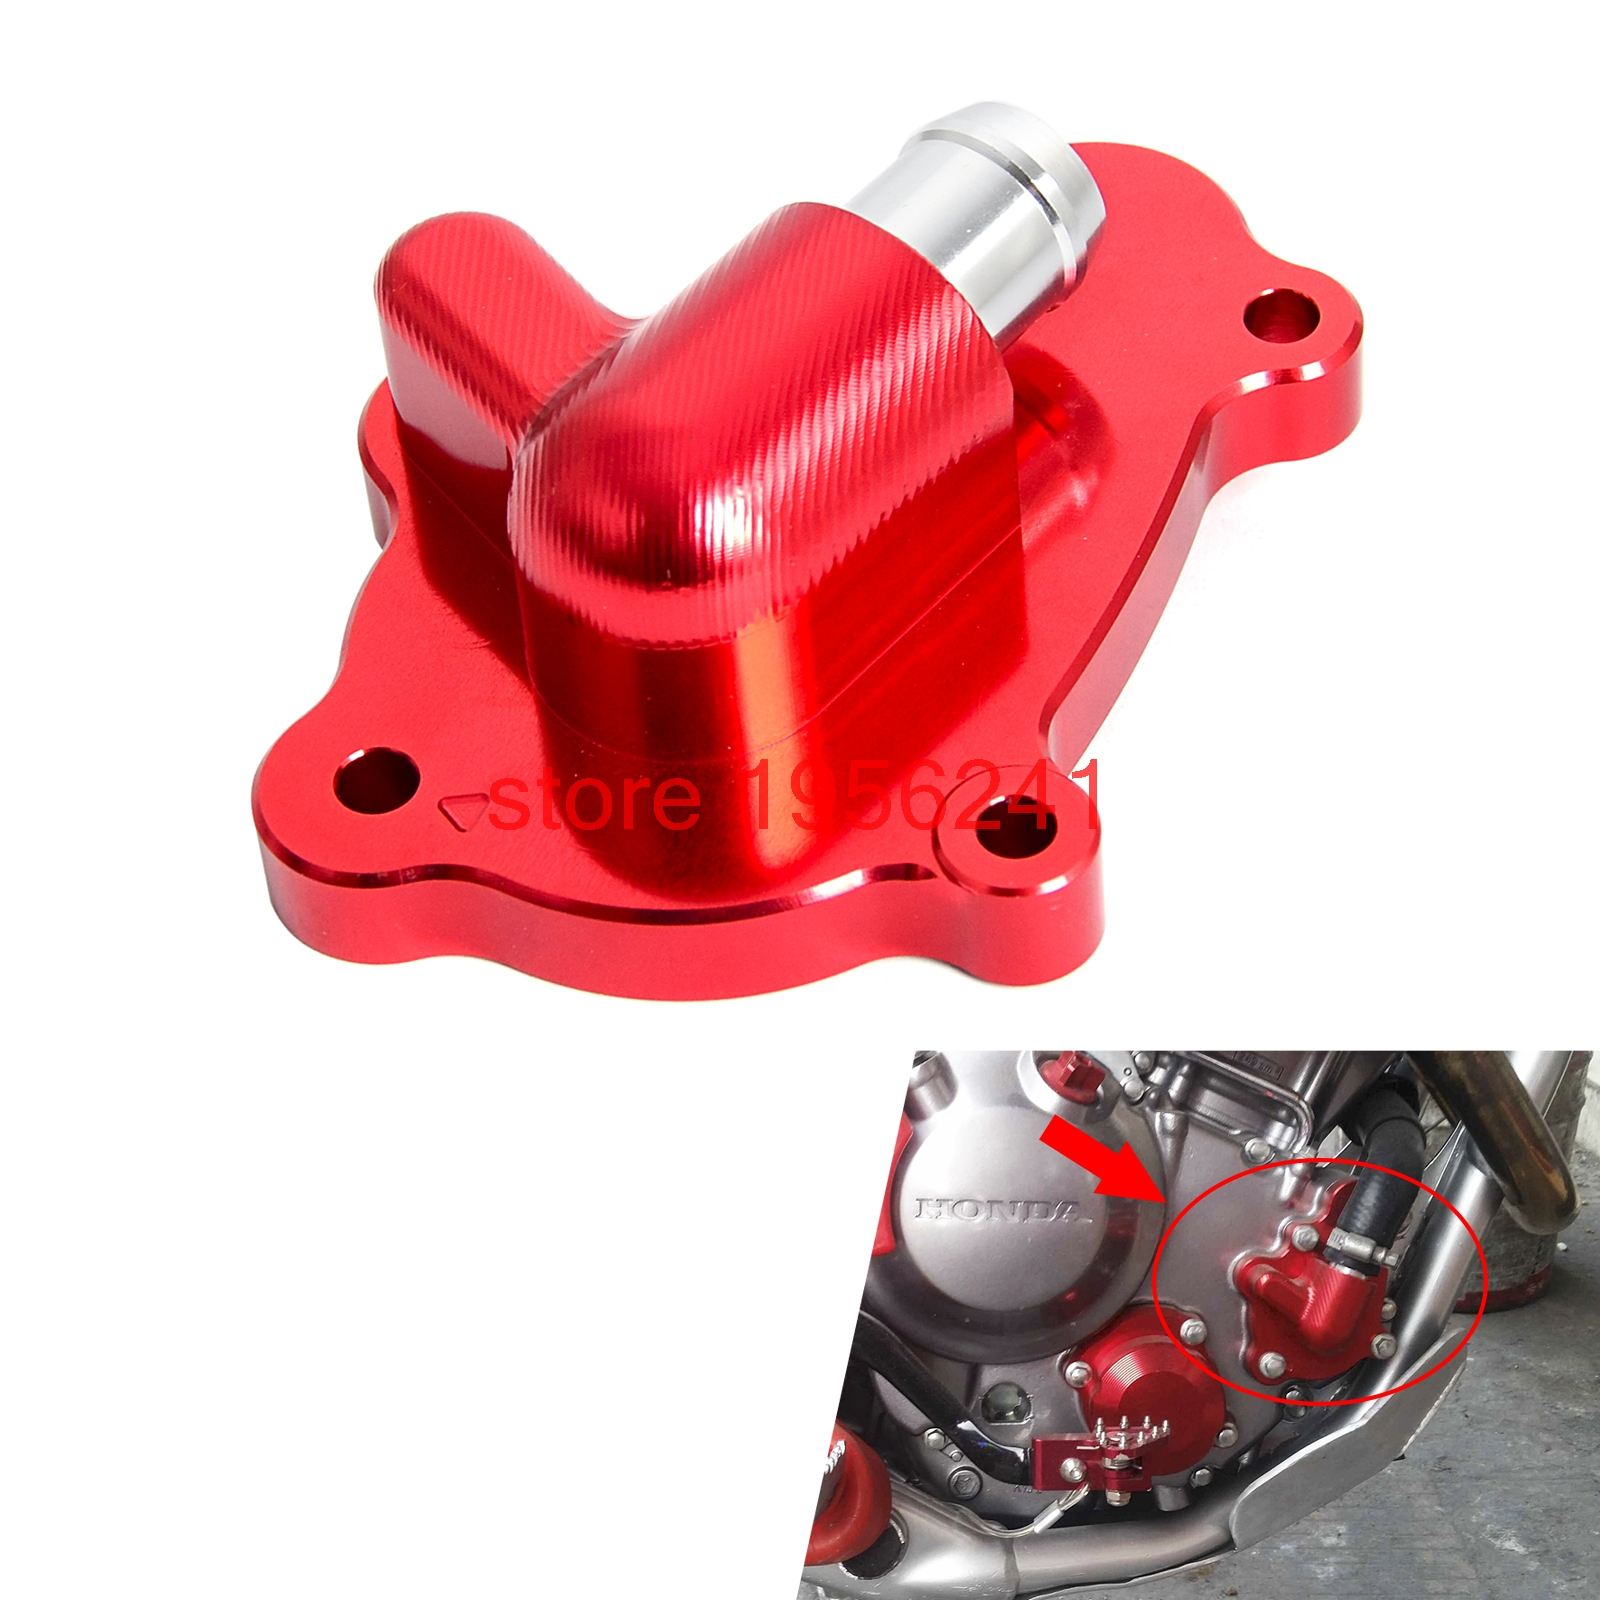 CNC Billet Aluminum Water Pump Cover Protector for Honda CRF250L CRF250M 2012 - 2015 2013 2014 CRF250 L M<br>